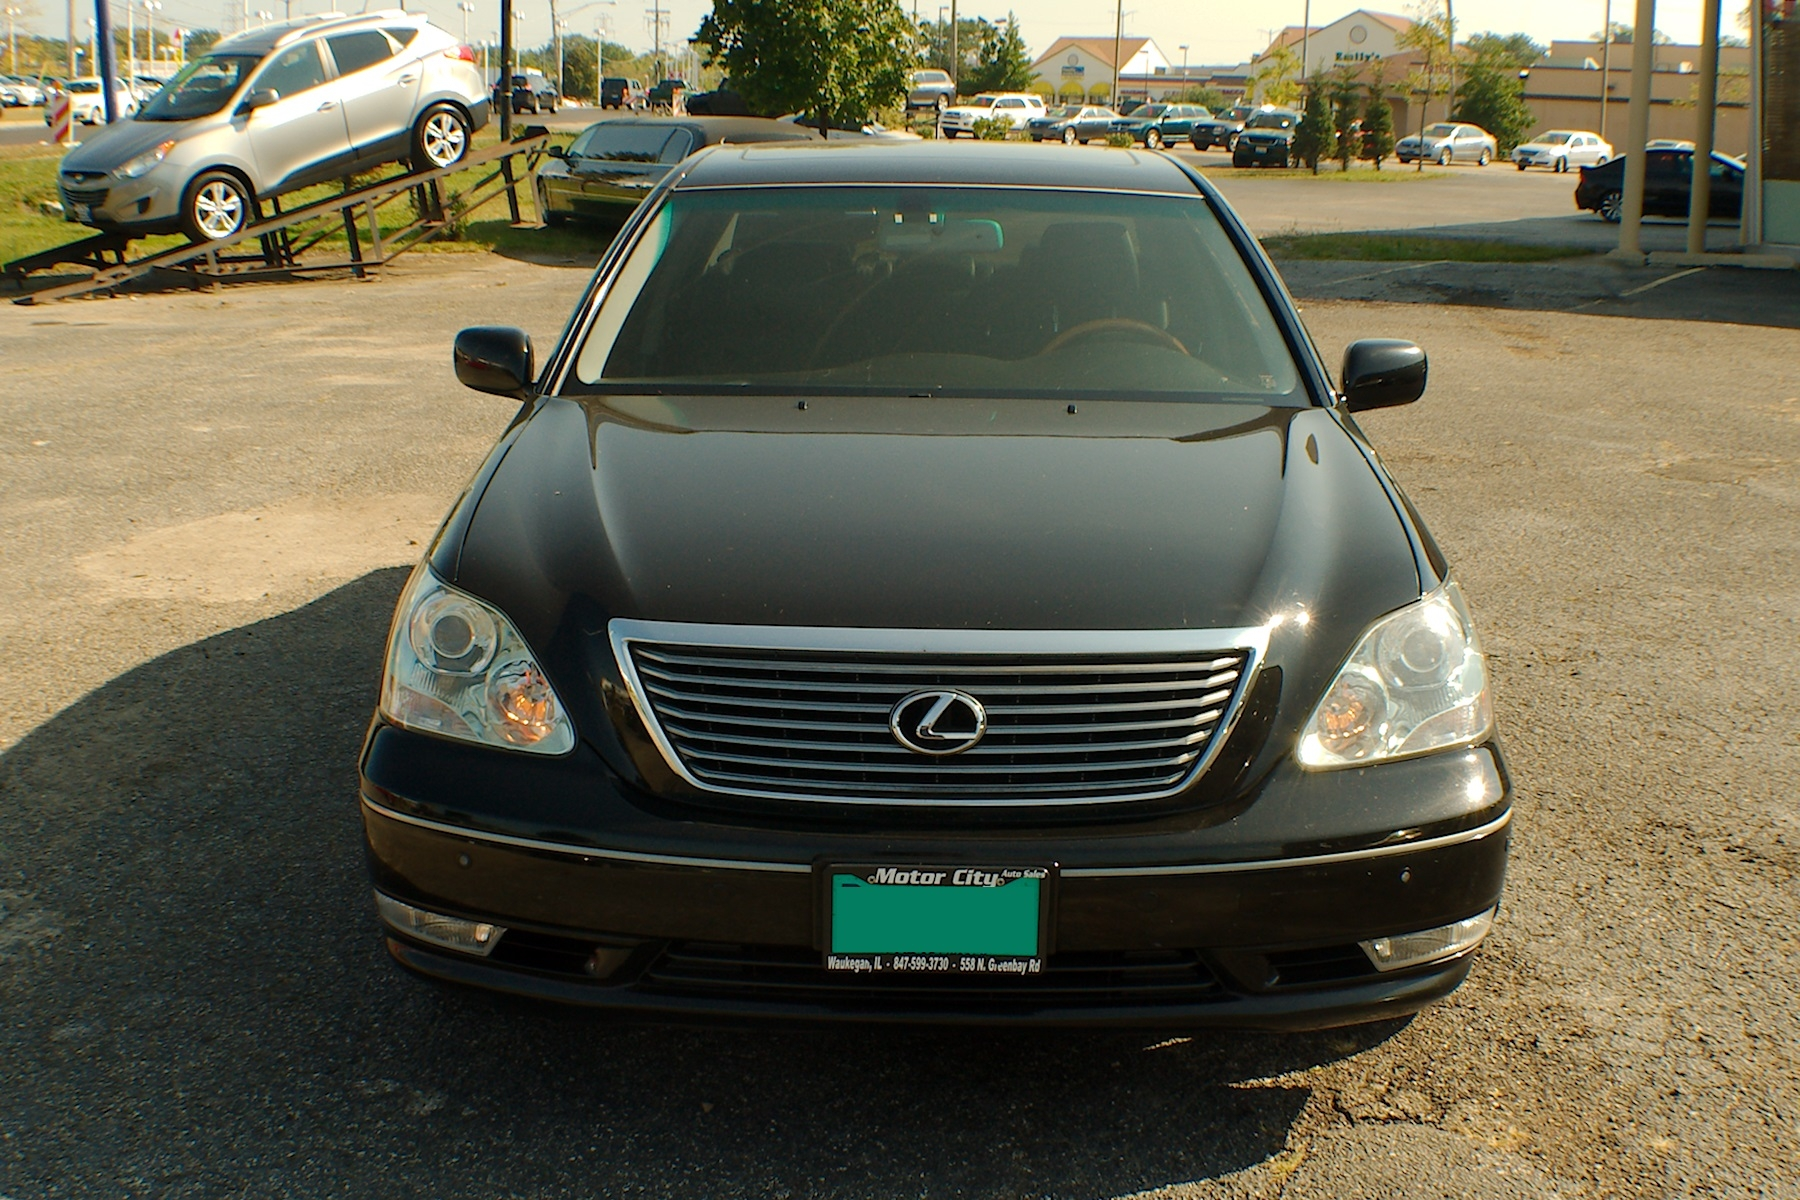 2006 Lexus LS430 Black Sedan Used Car Sale Gurnee Kenosha Mchenry Chicago Illinois